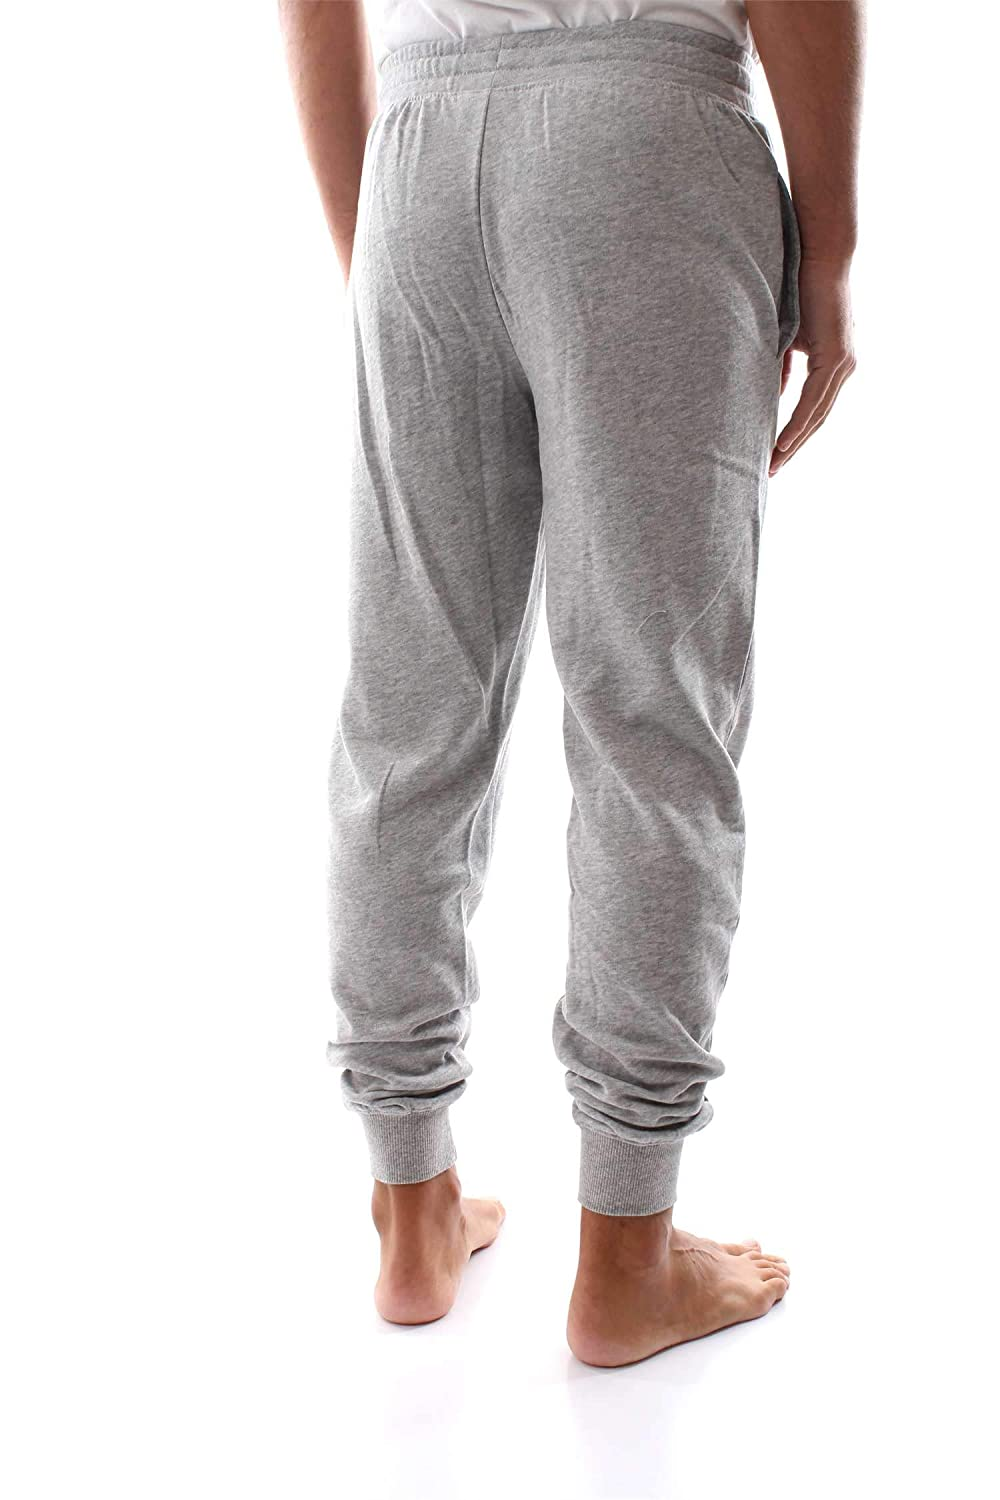 c03f3ea2bb8d6b Calvin Klein Mens Bold Accents Lounge Jogger - Grey Heather: Amazon.co.uk:  Clothing